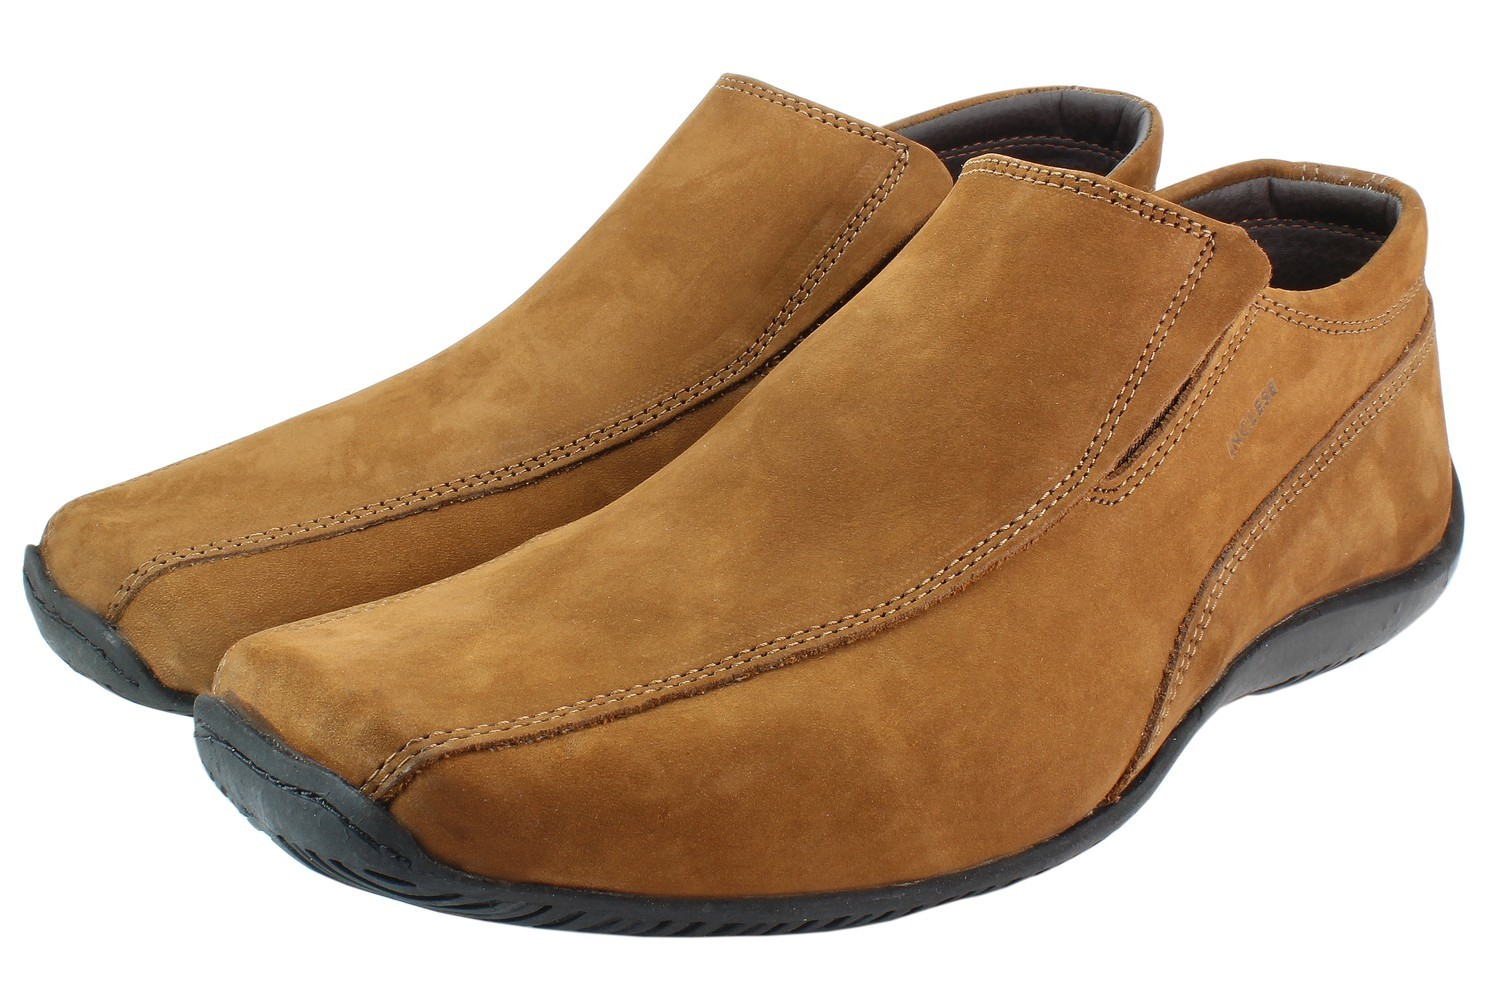 Mens Shoes Genuine Nubuck Leather Light Brown - SUGGESTED RETAIL PRICE $45 - WHOLESALE PRICE $9.5 - Minimum purchase 8 - pairs